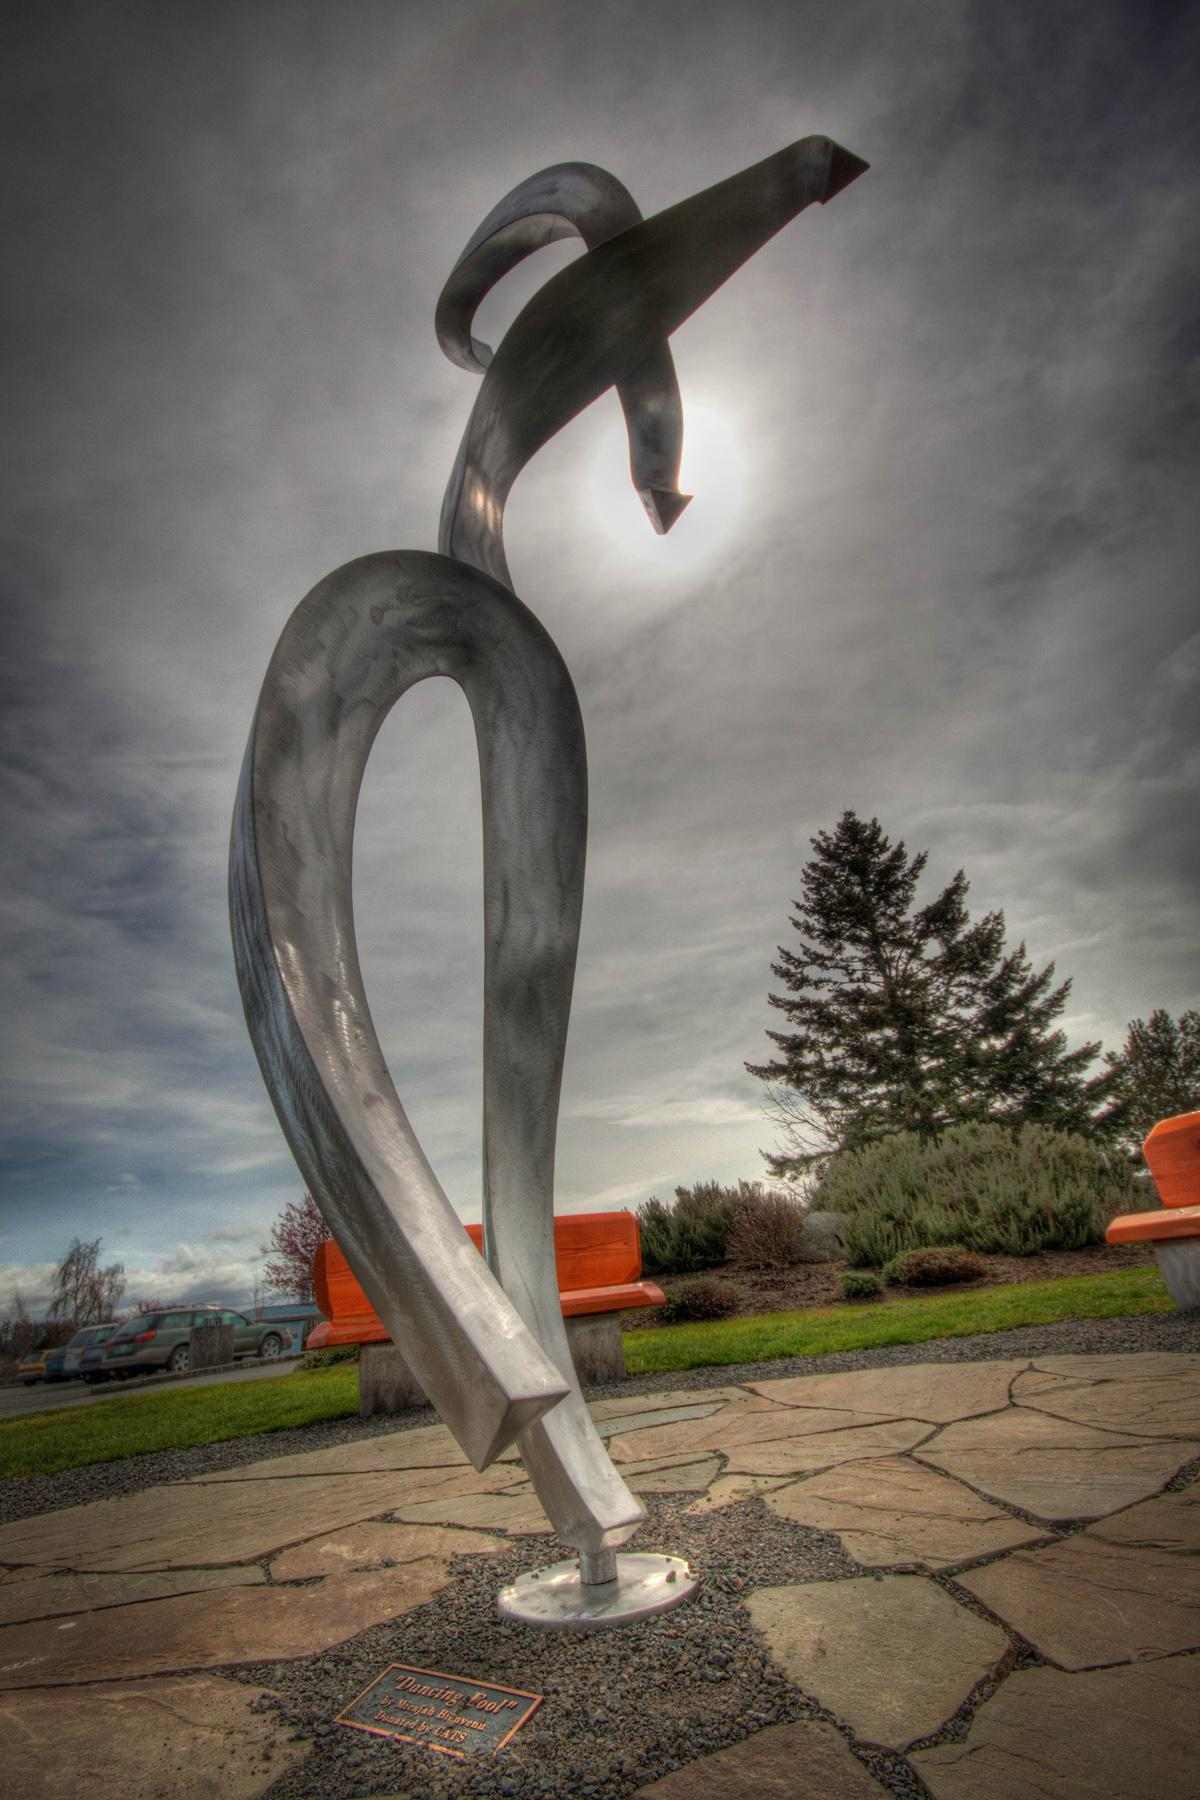 "<p>Dancing Fool V Stainless steel 152"" H x 60"" W x 42"" D 2005 (Image courtesy of Micajah Bienven).</p>"